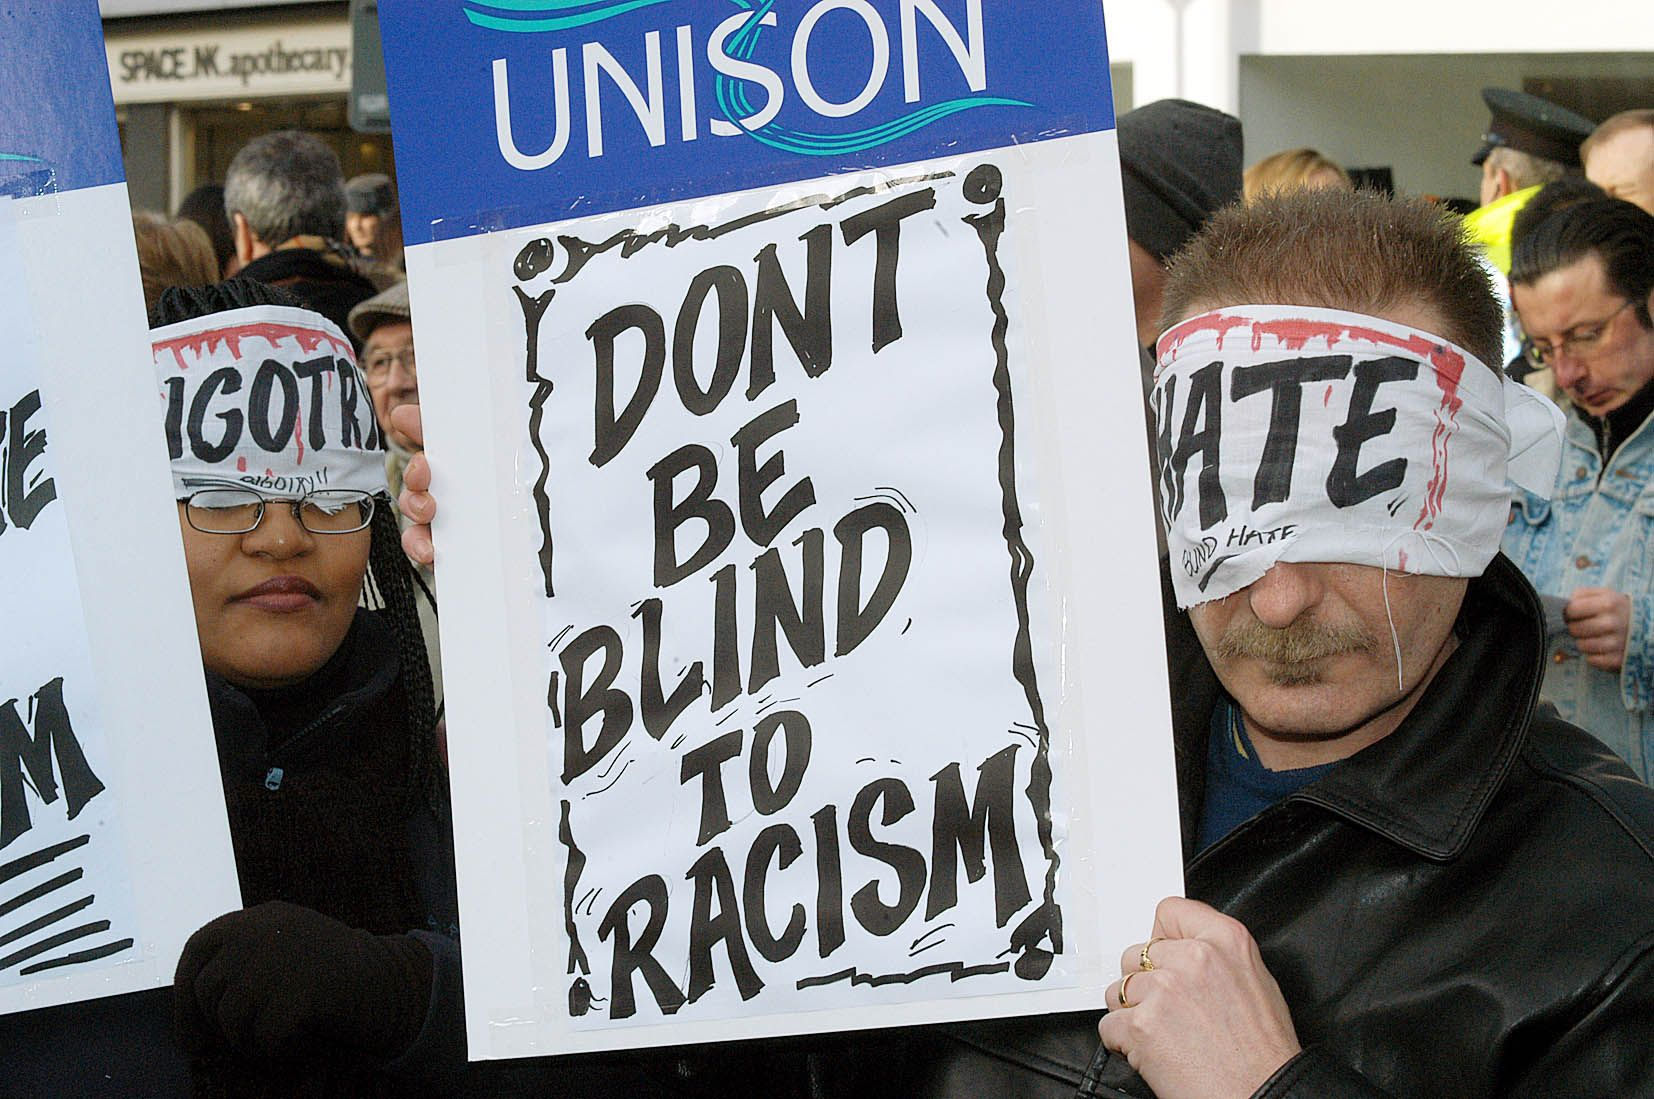 FORWARD THINKING: Making Belfast a Racism Free Zone is a goal well worth pursuing